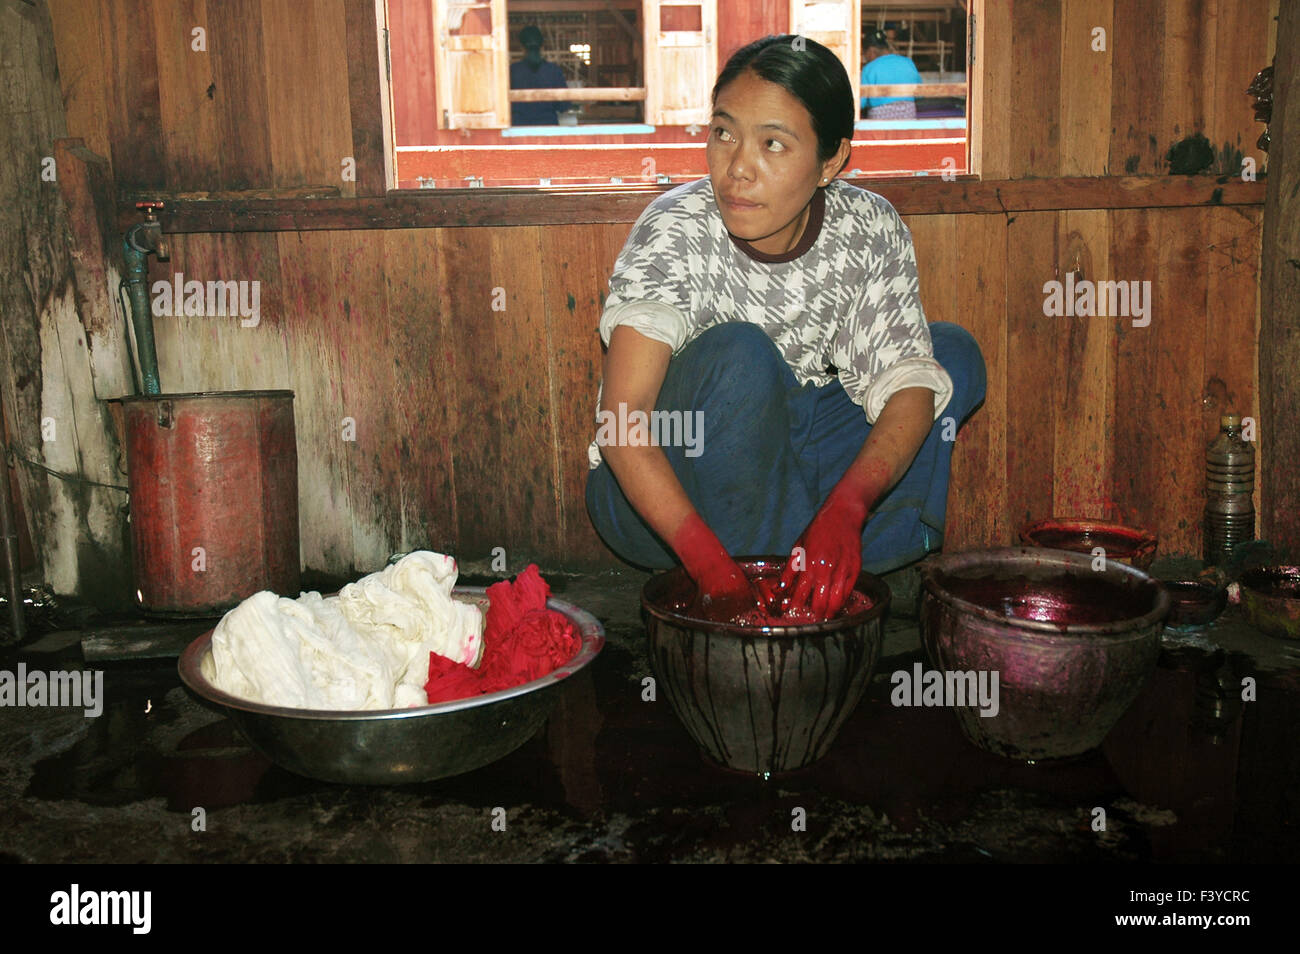 Young burmese woman dyeing clothes at Inle Lake, Shan State, Myanmar - Stock Image